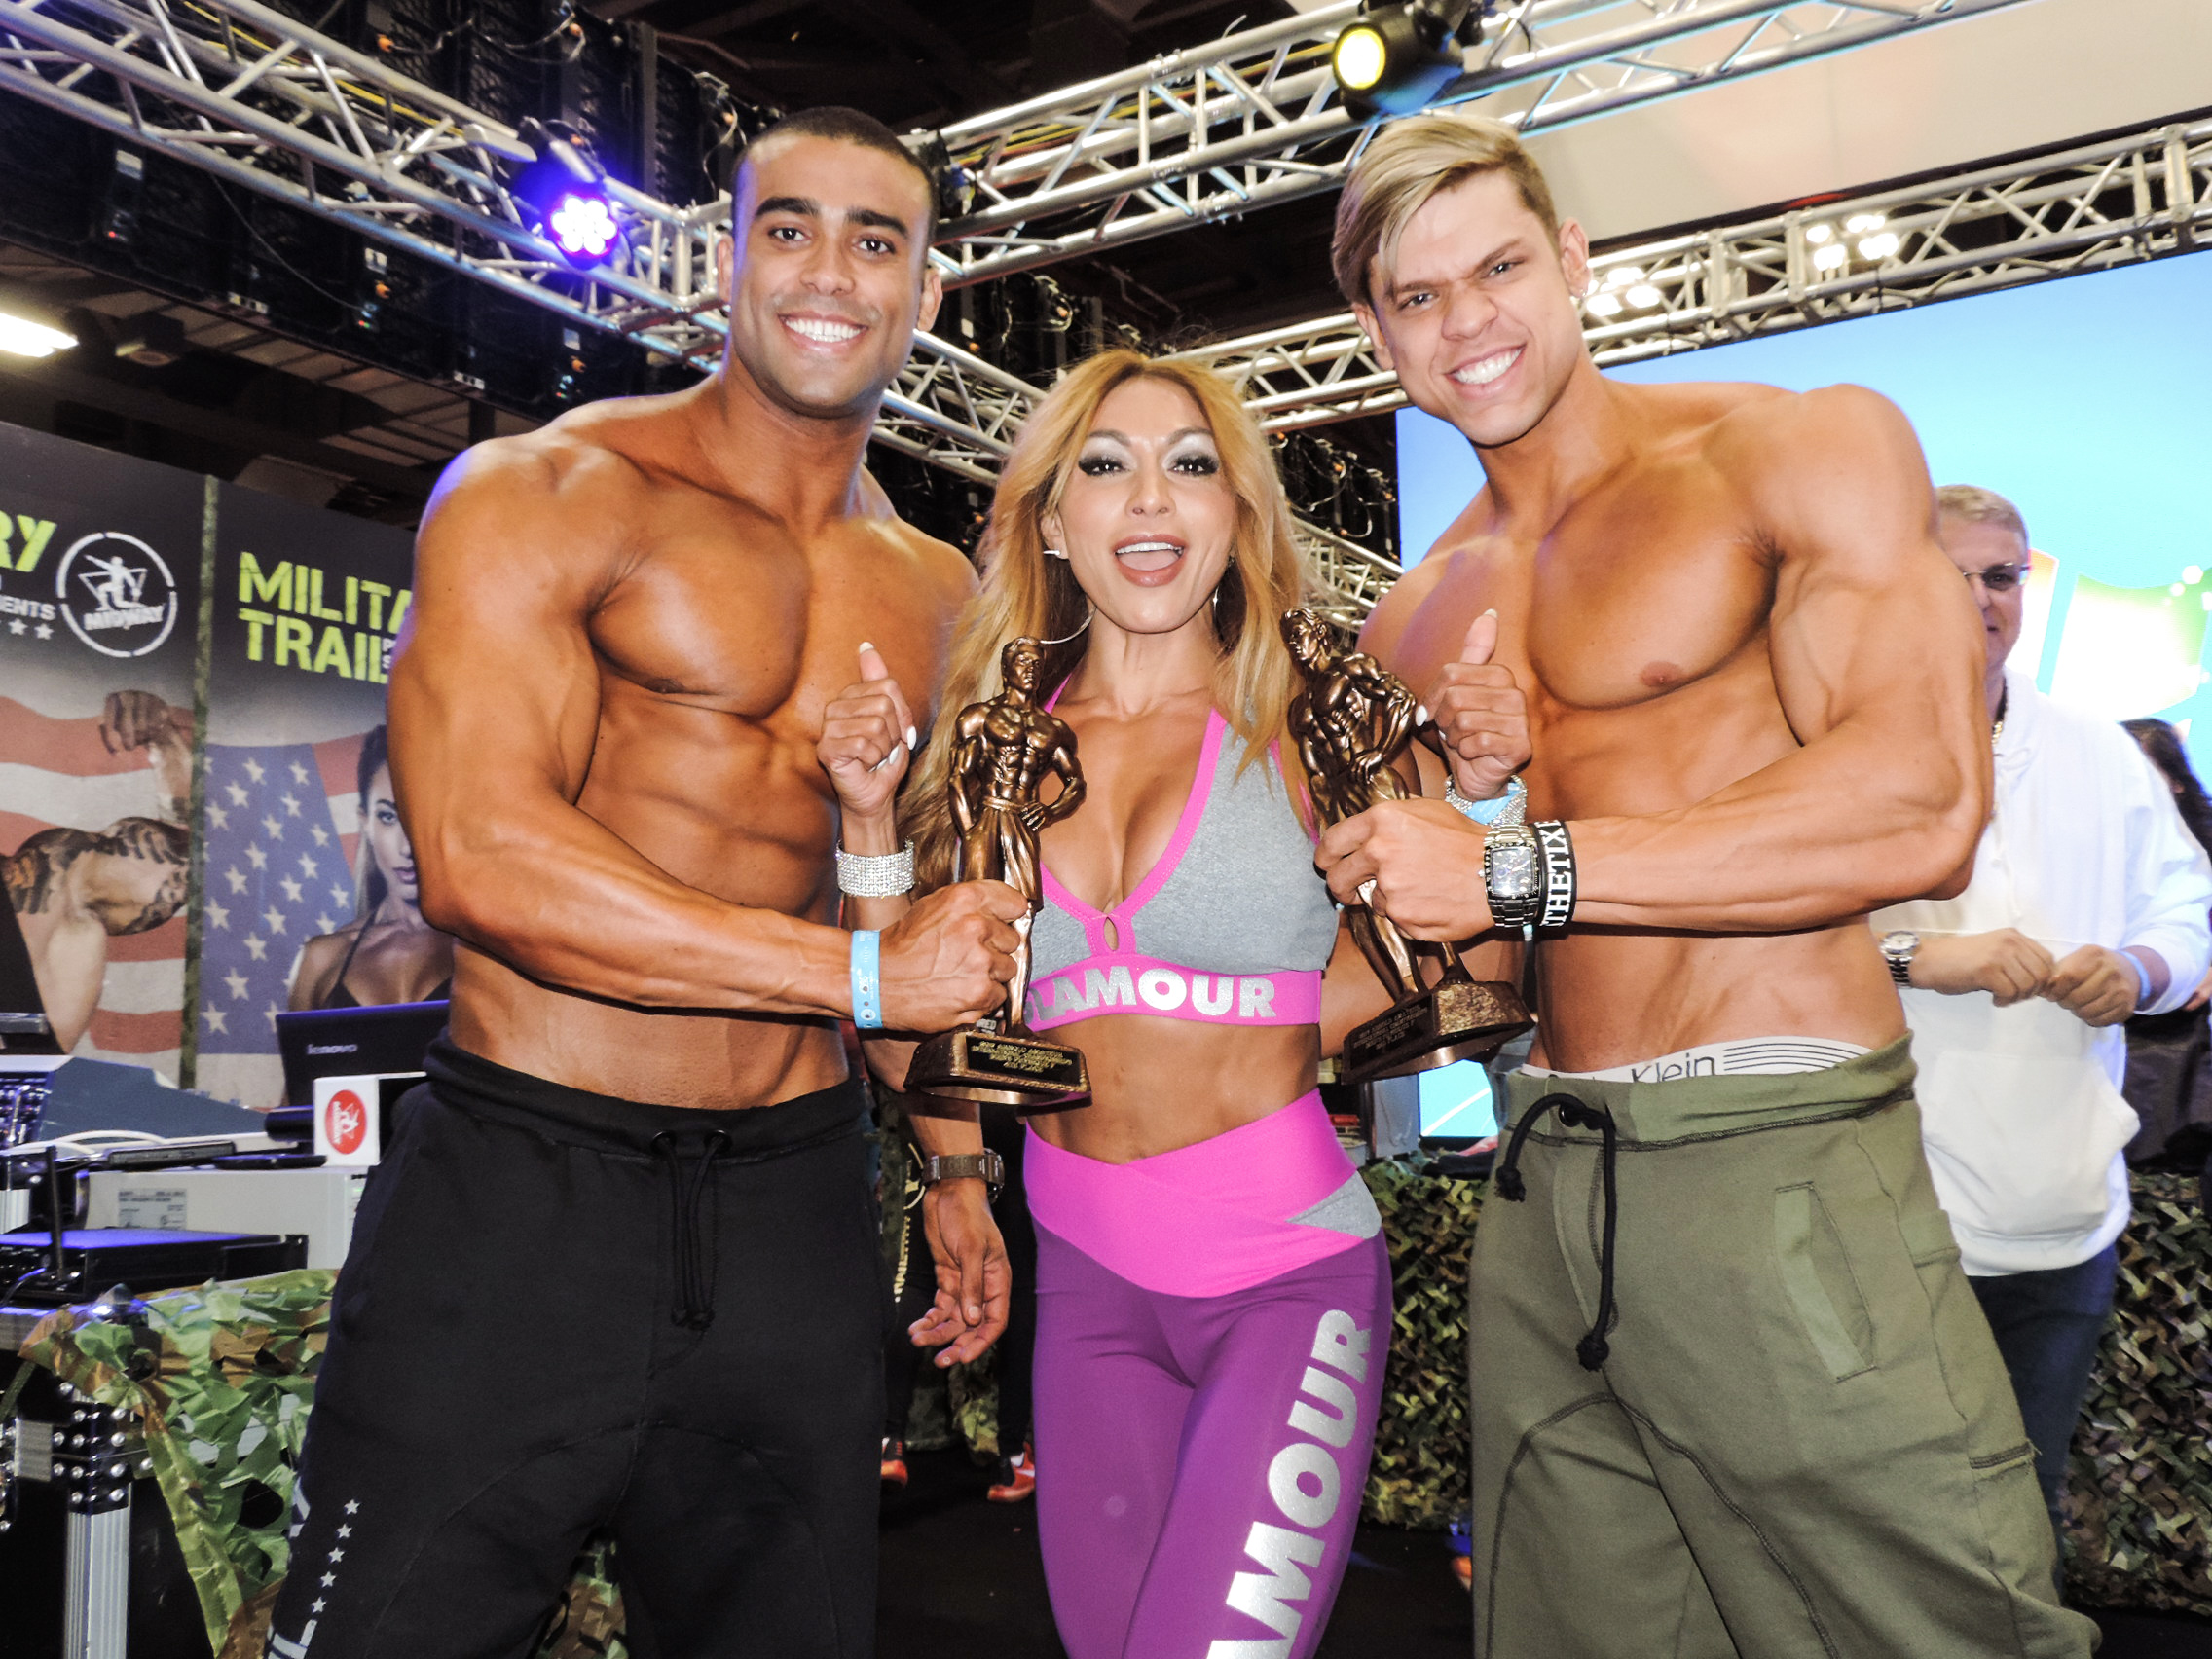 Romulo Rocha & Eric Wildberger showing off their trophies with Karina Nascimento.